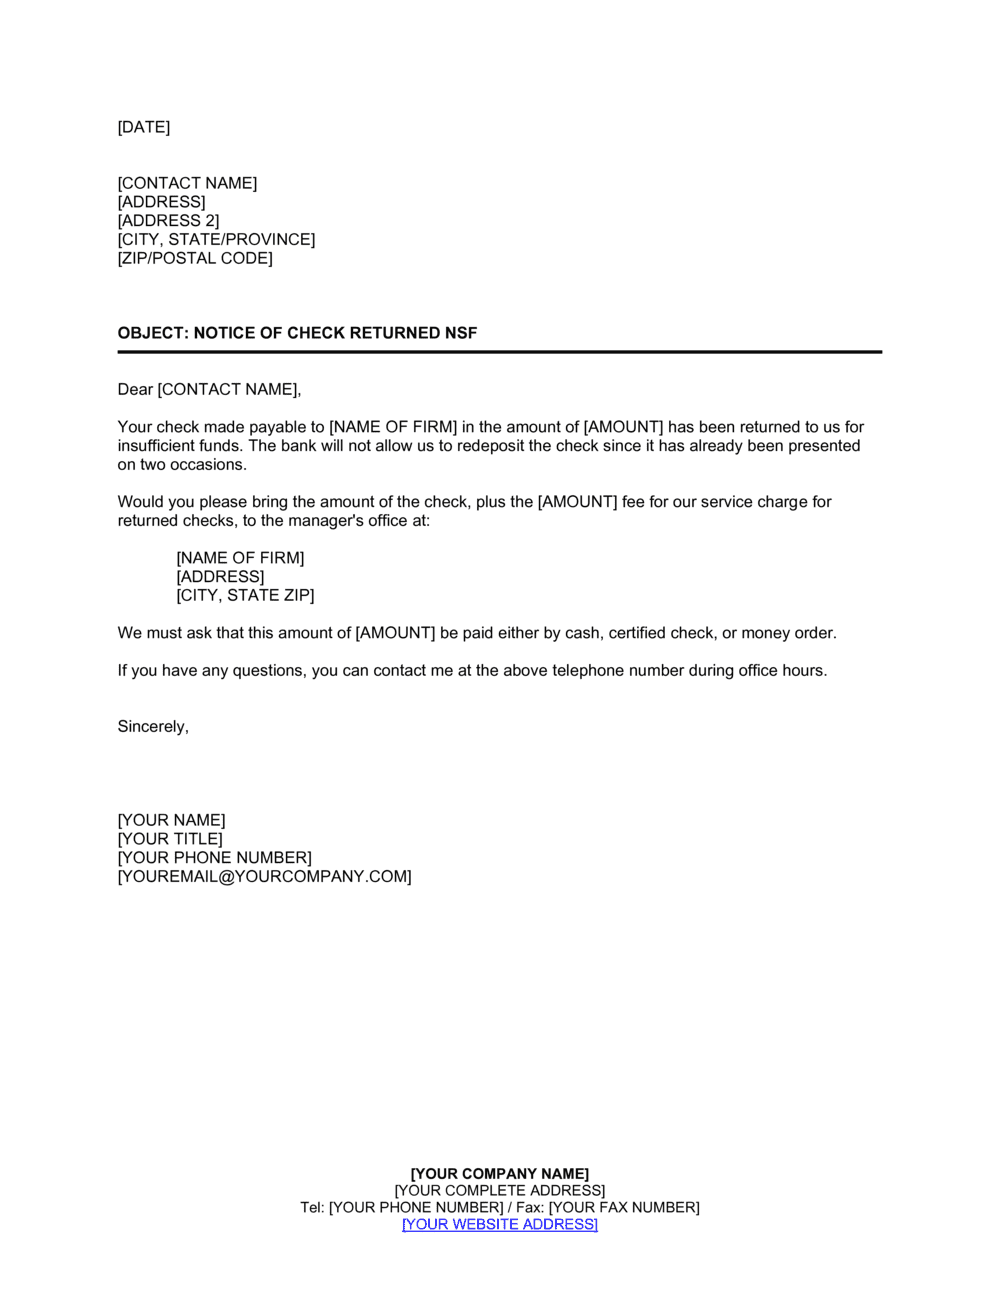 Business-in-a-Box's Notice of Check NSF 2 Template